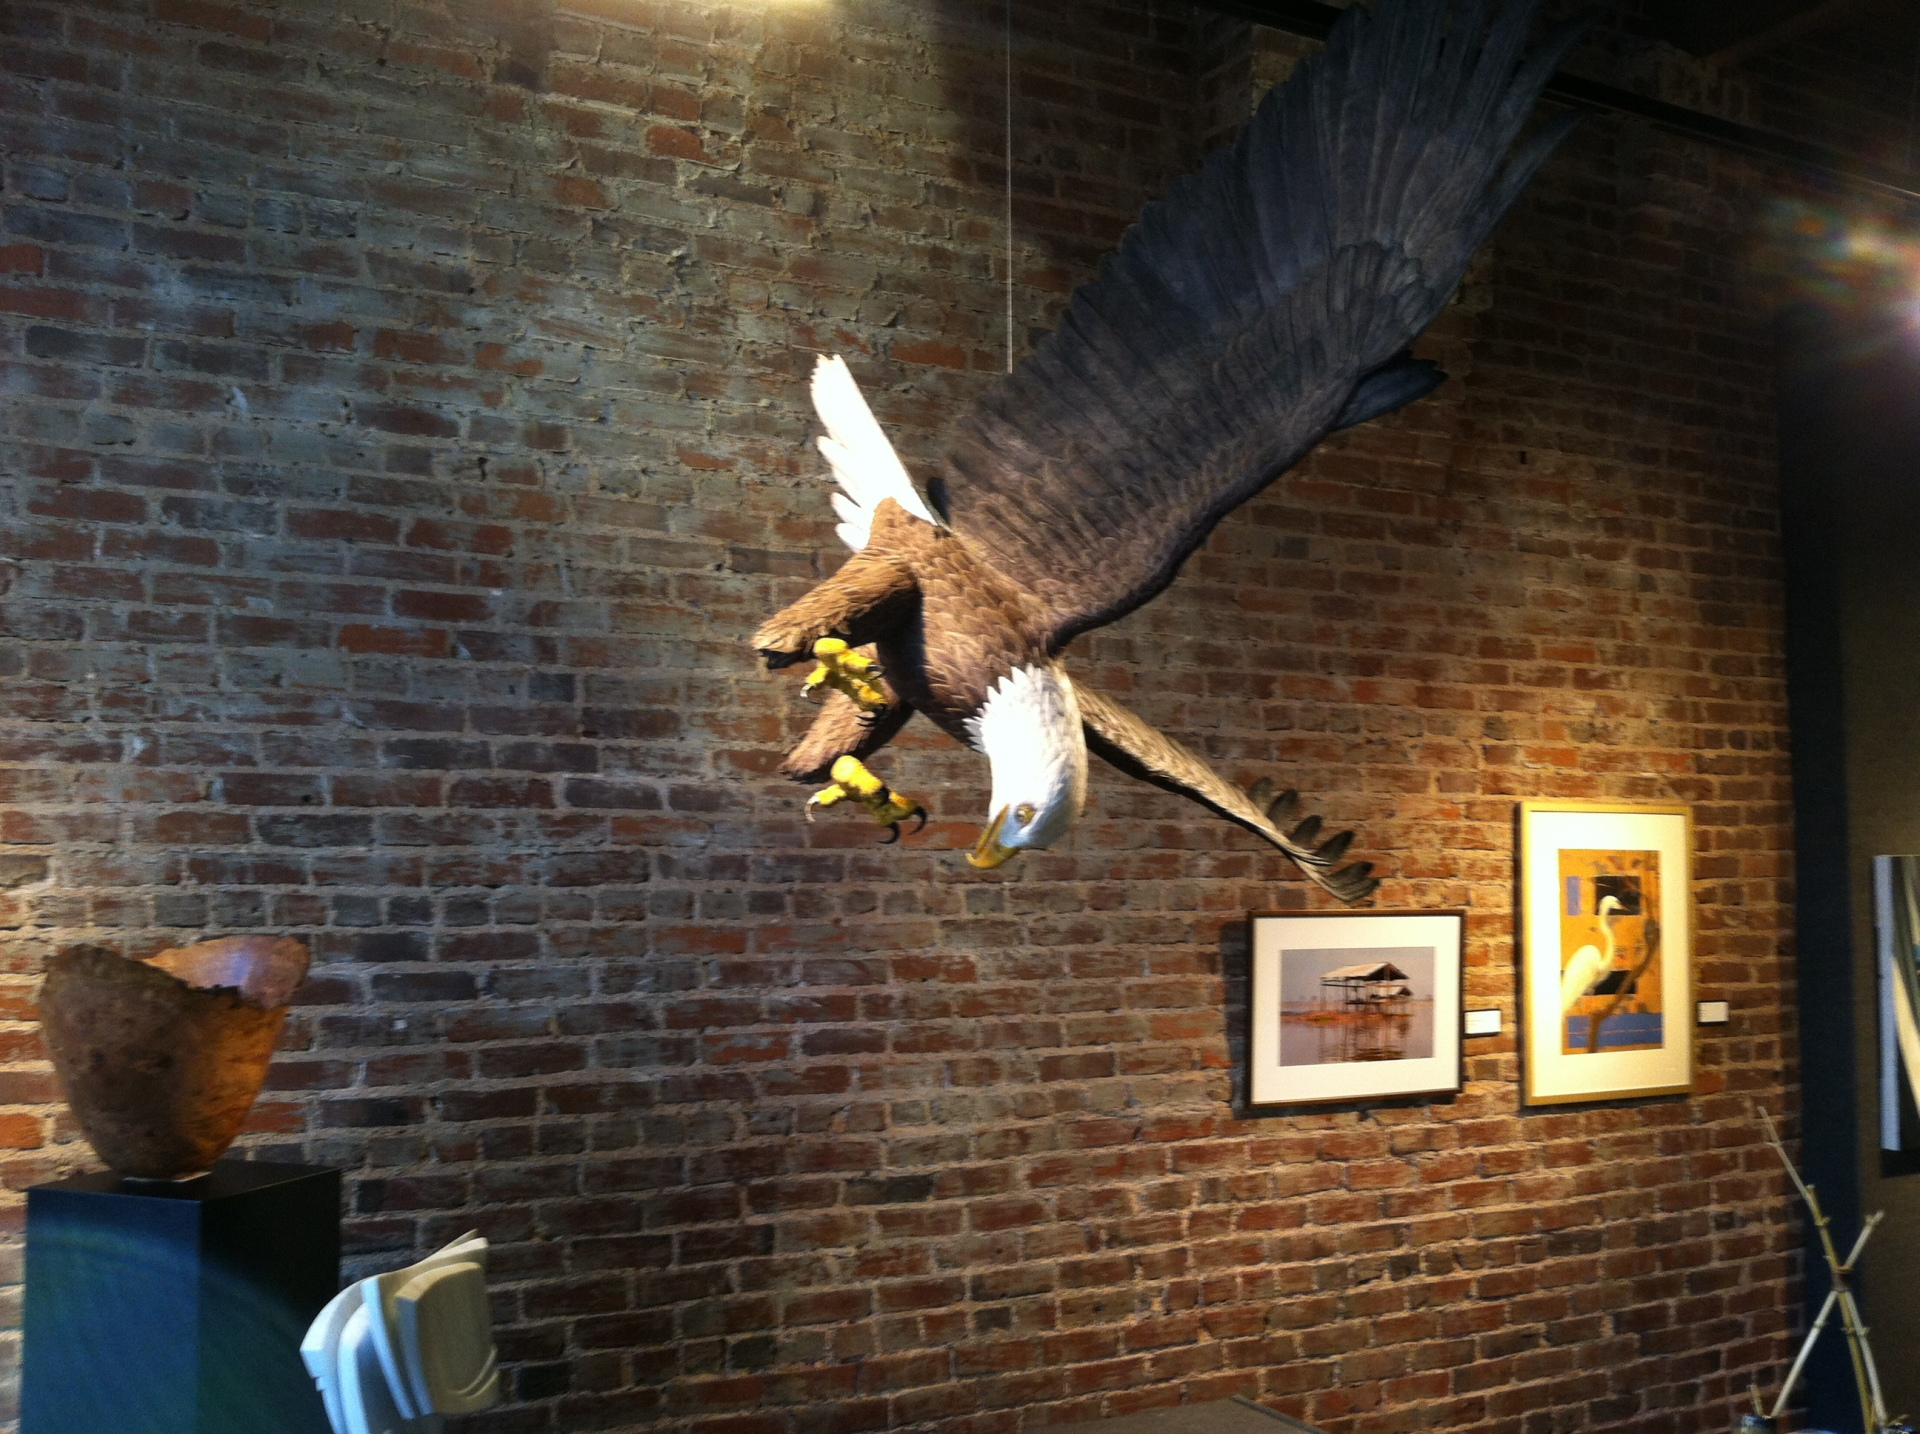 Eagle on display